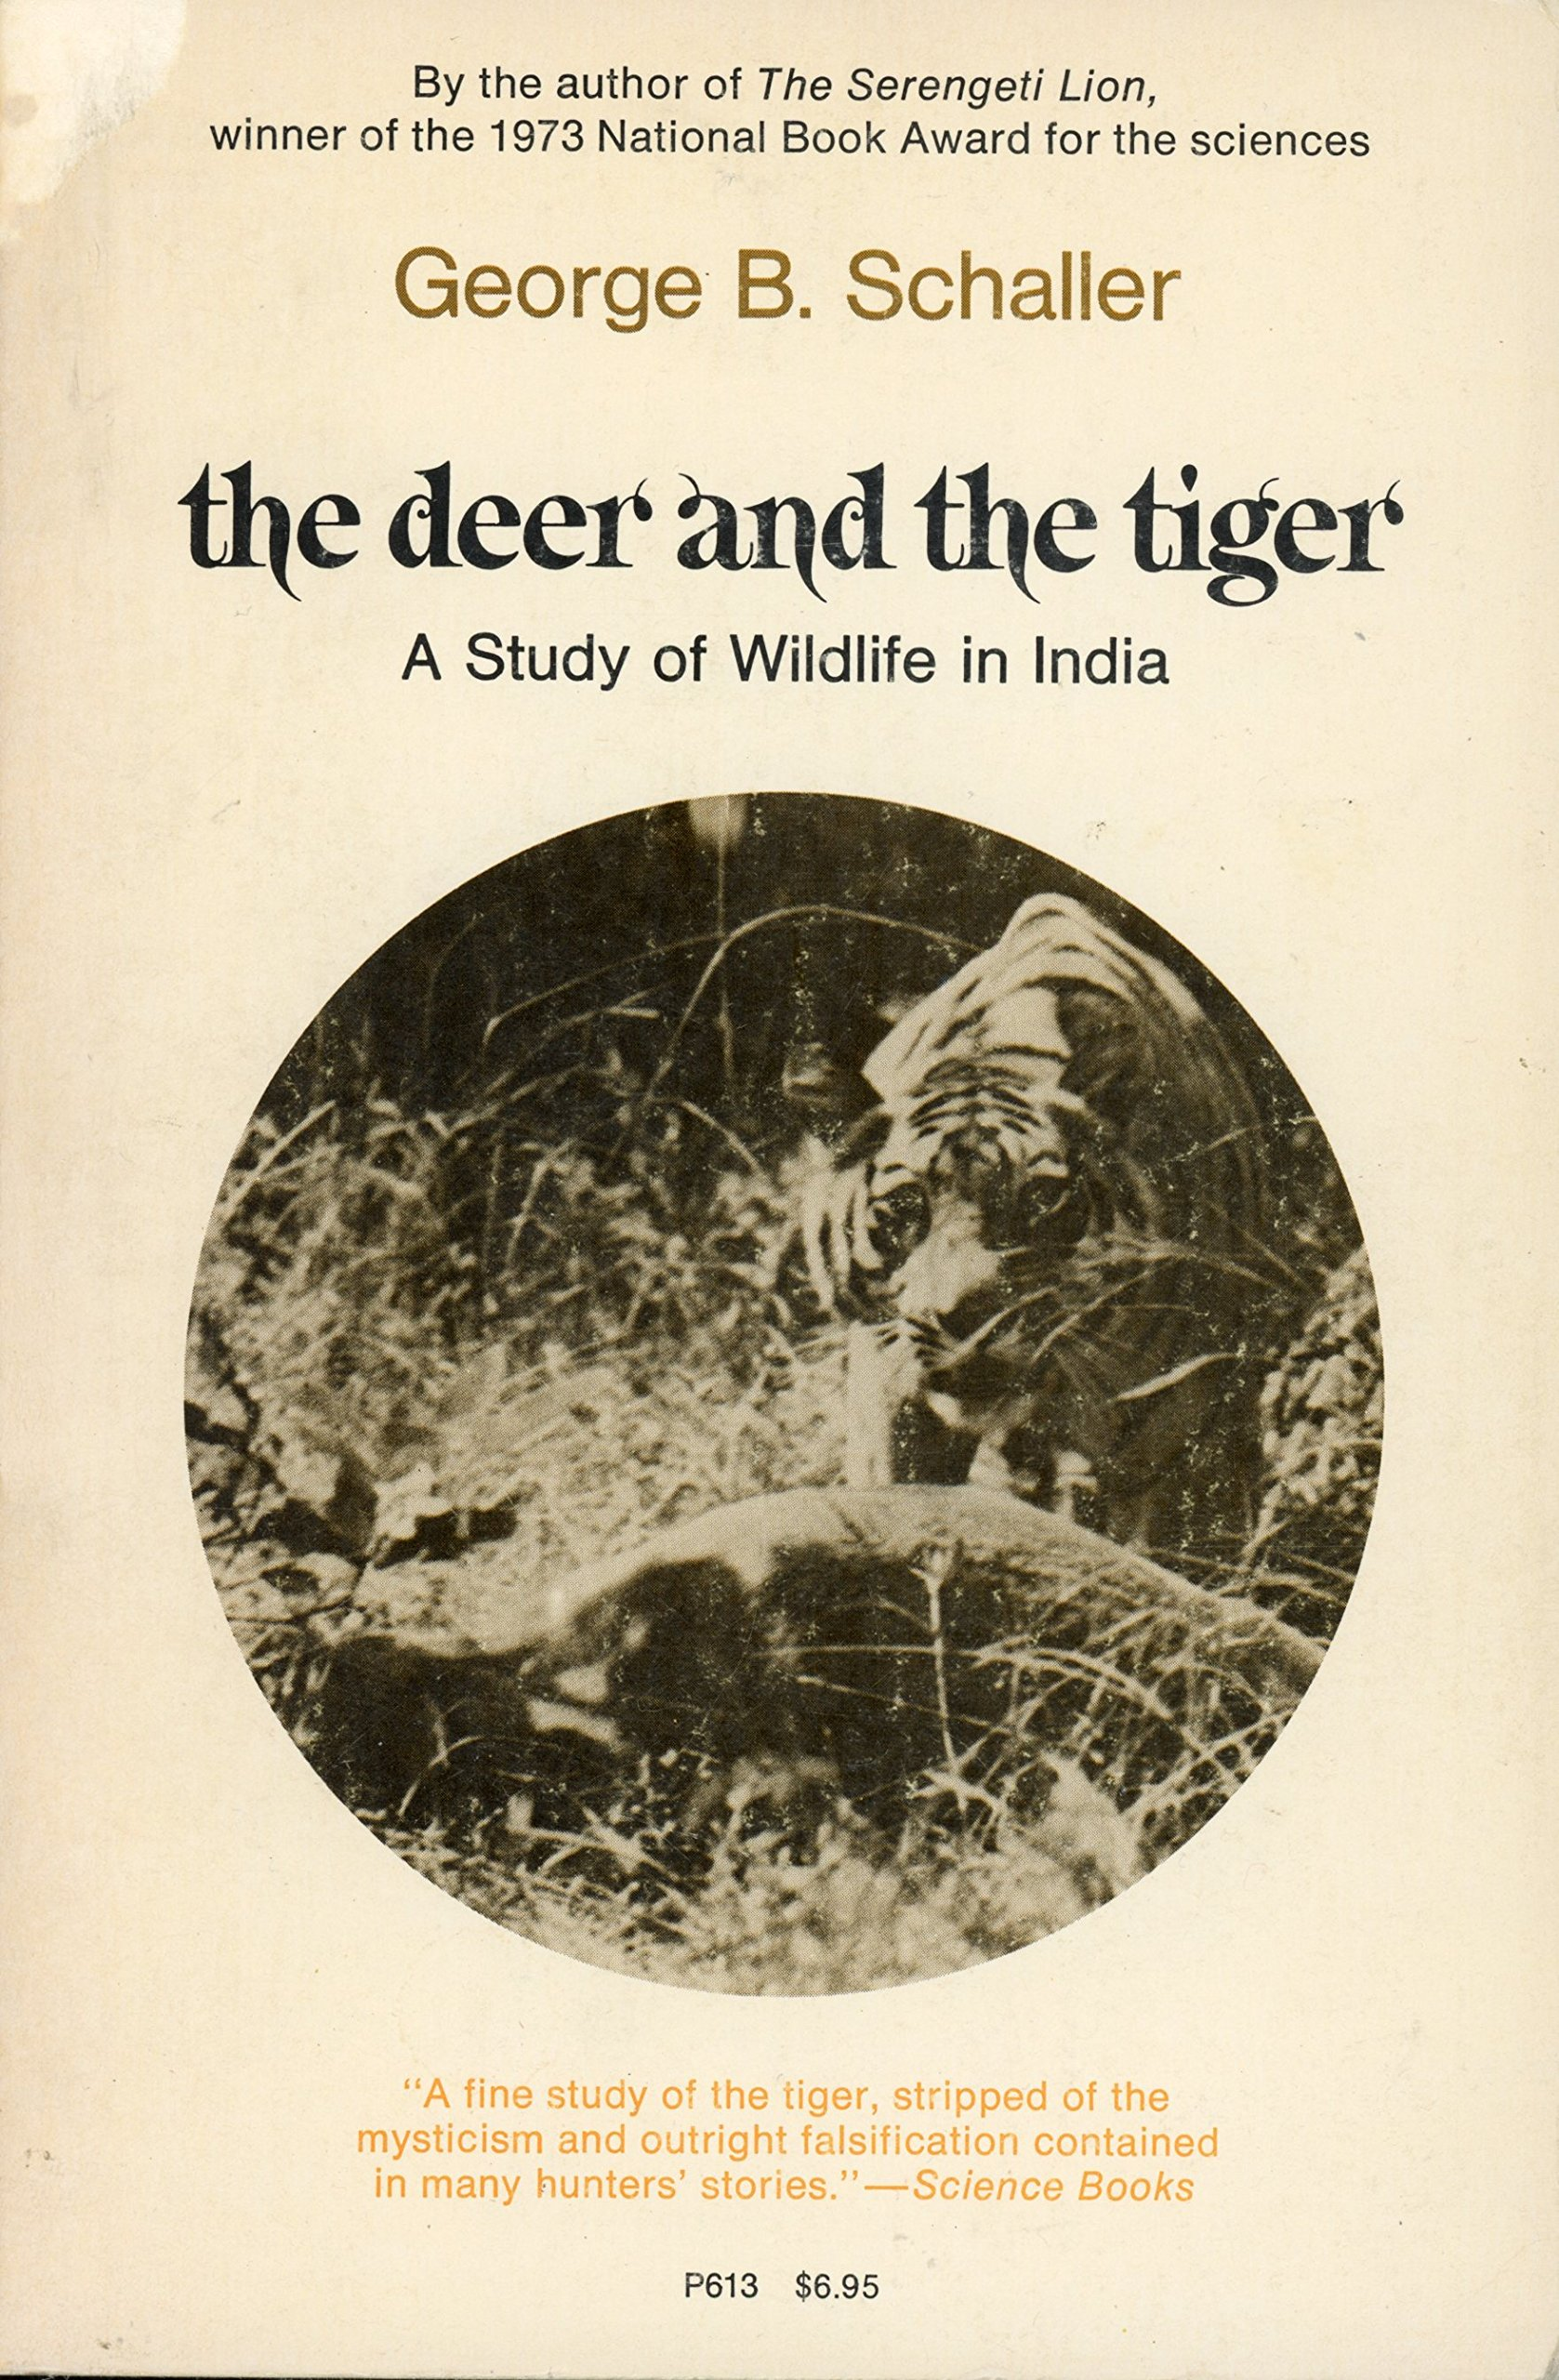 the tiger and the deer